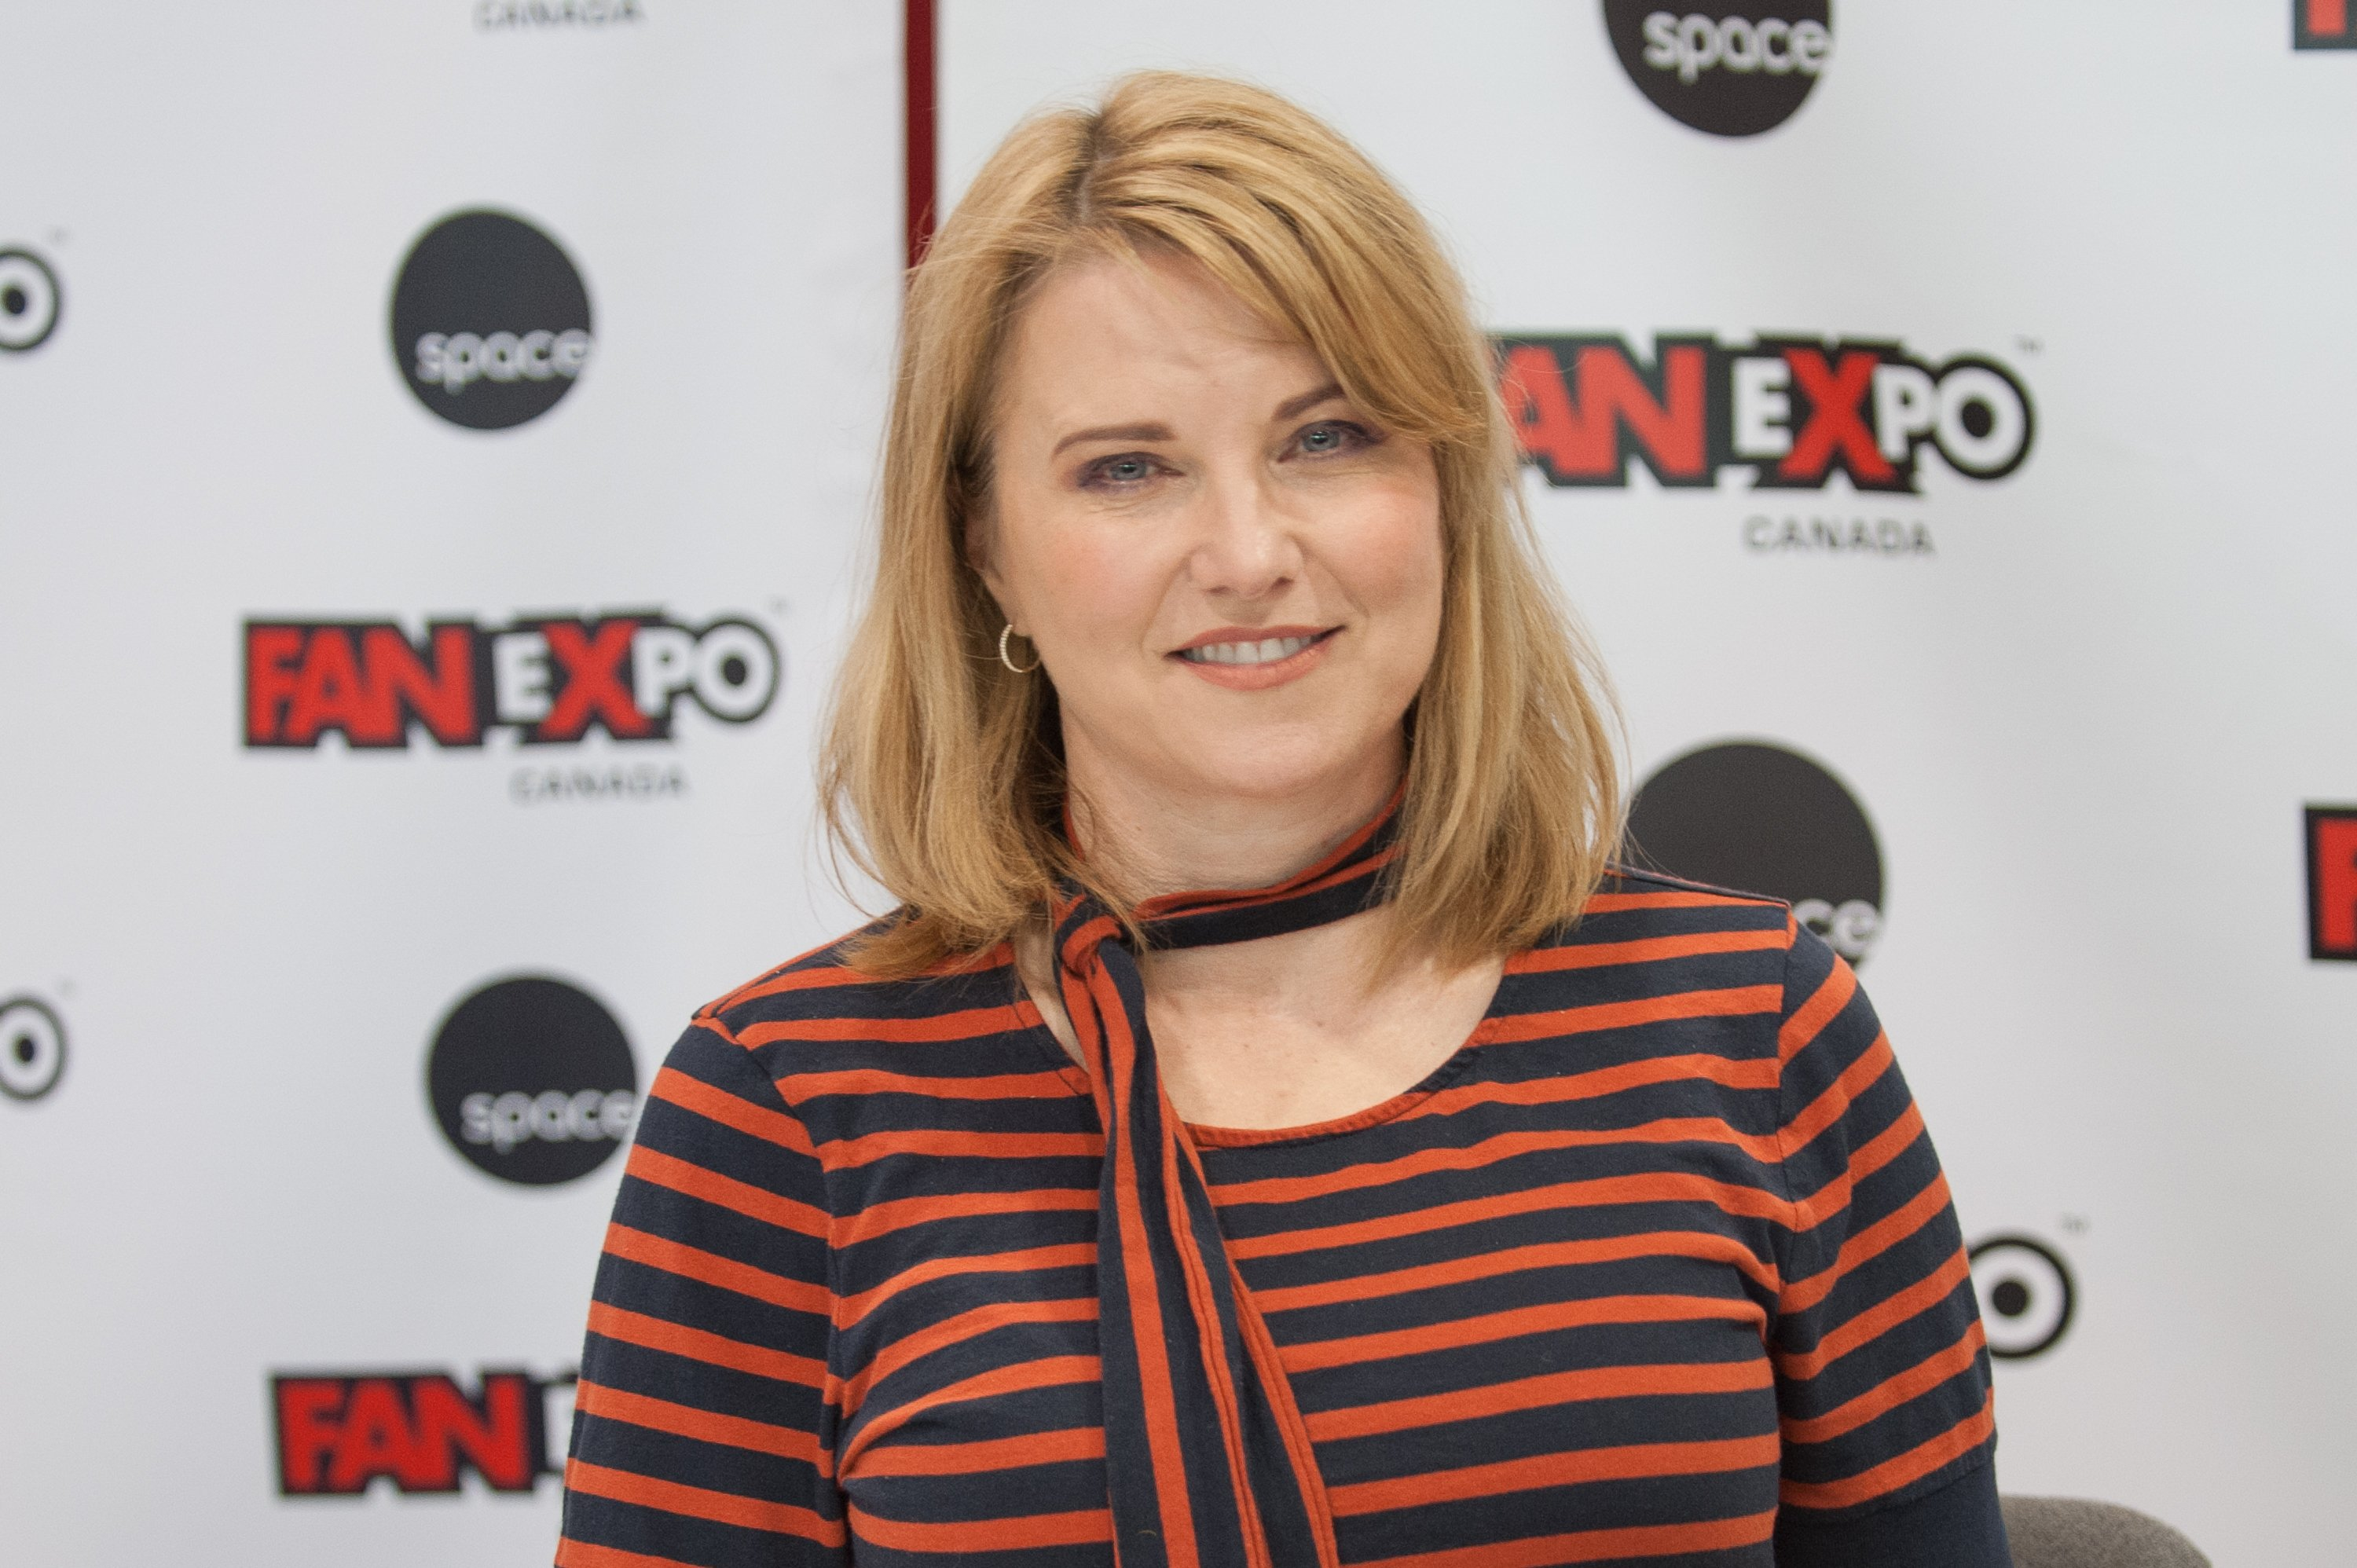 Lucy Lawless nimmt an der Fan Expo 2018 2018 im Metro Toronto Convention Centre am 1. September 2018 in Toronto, Kanada teil. | Quelle: Getty Images